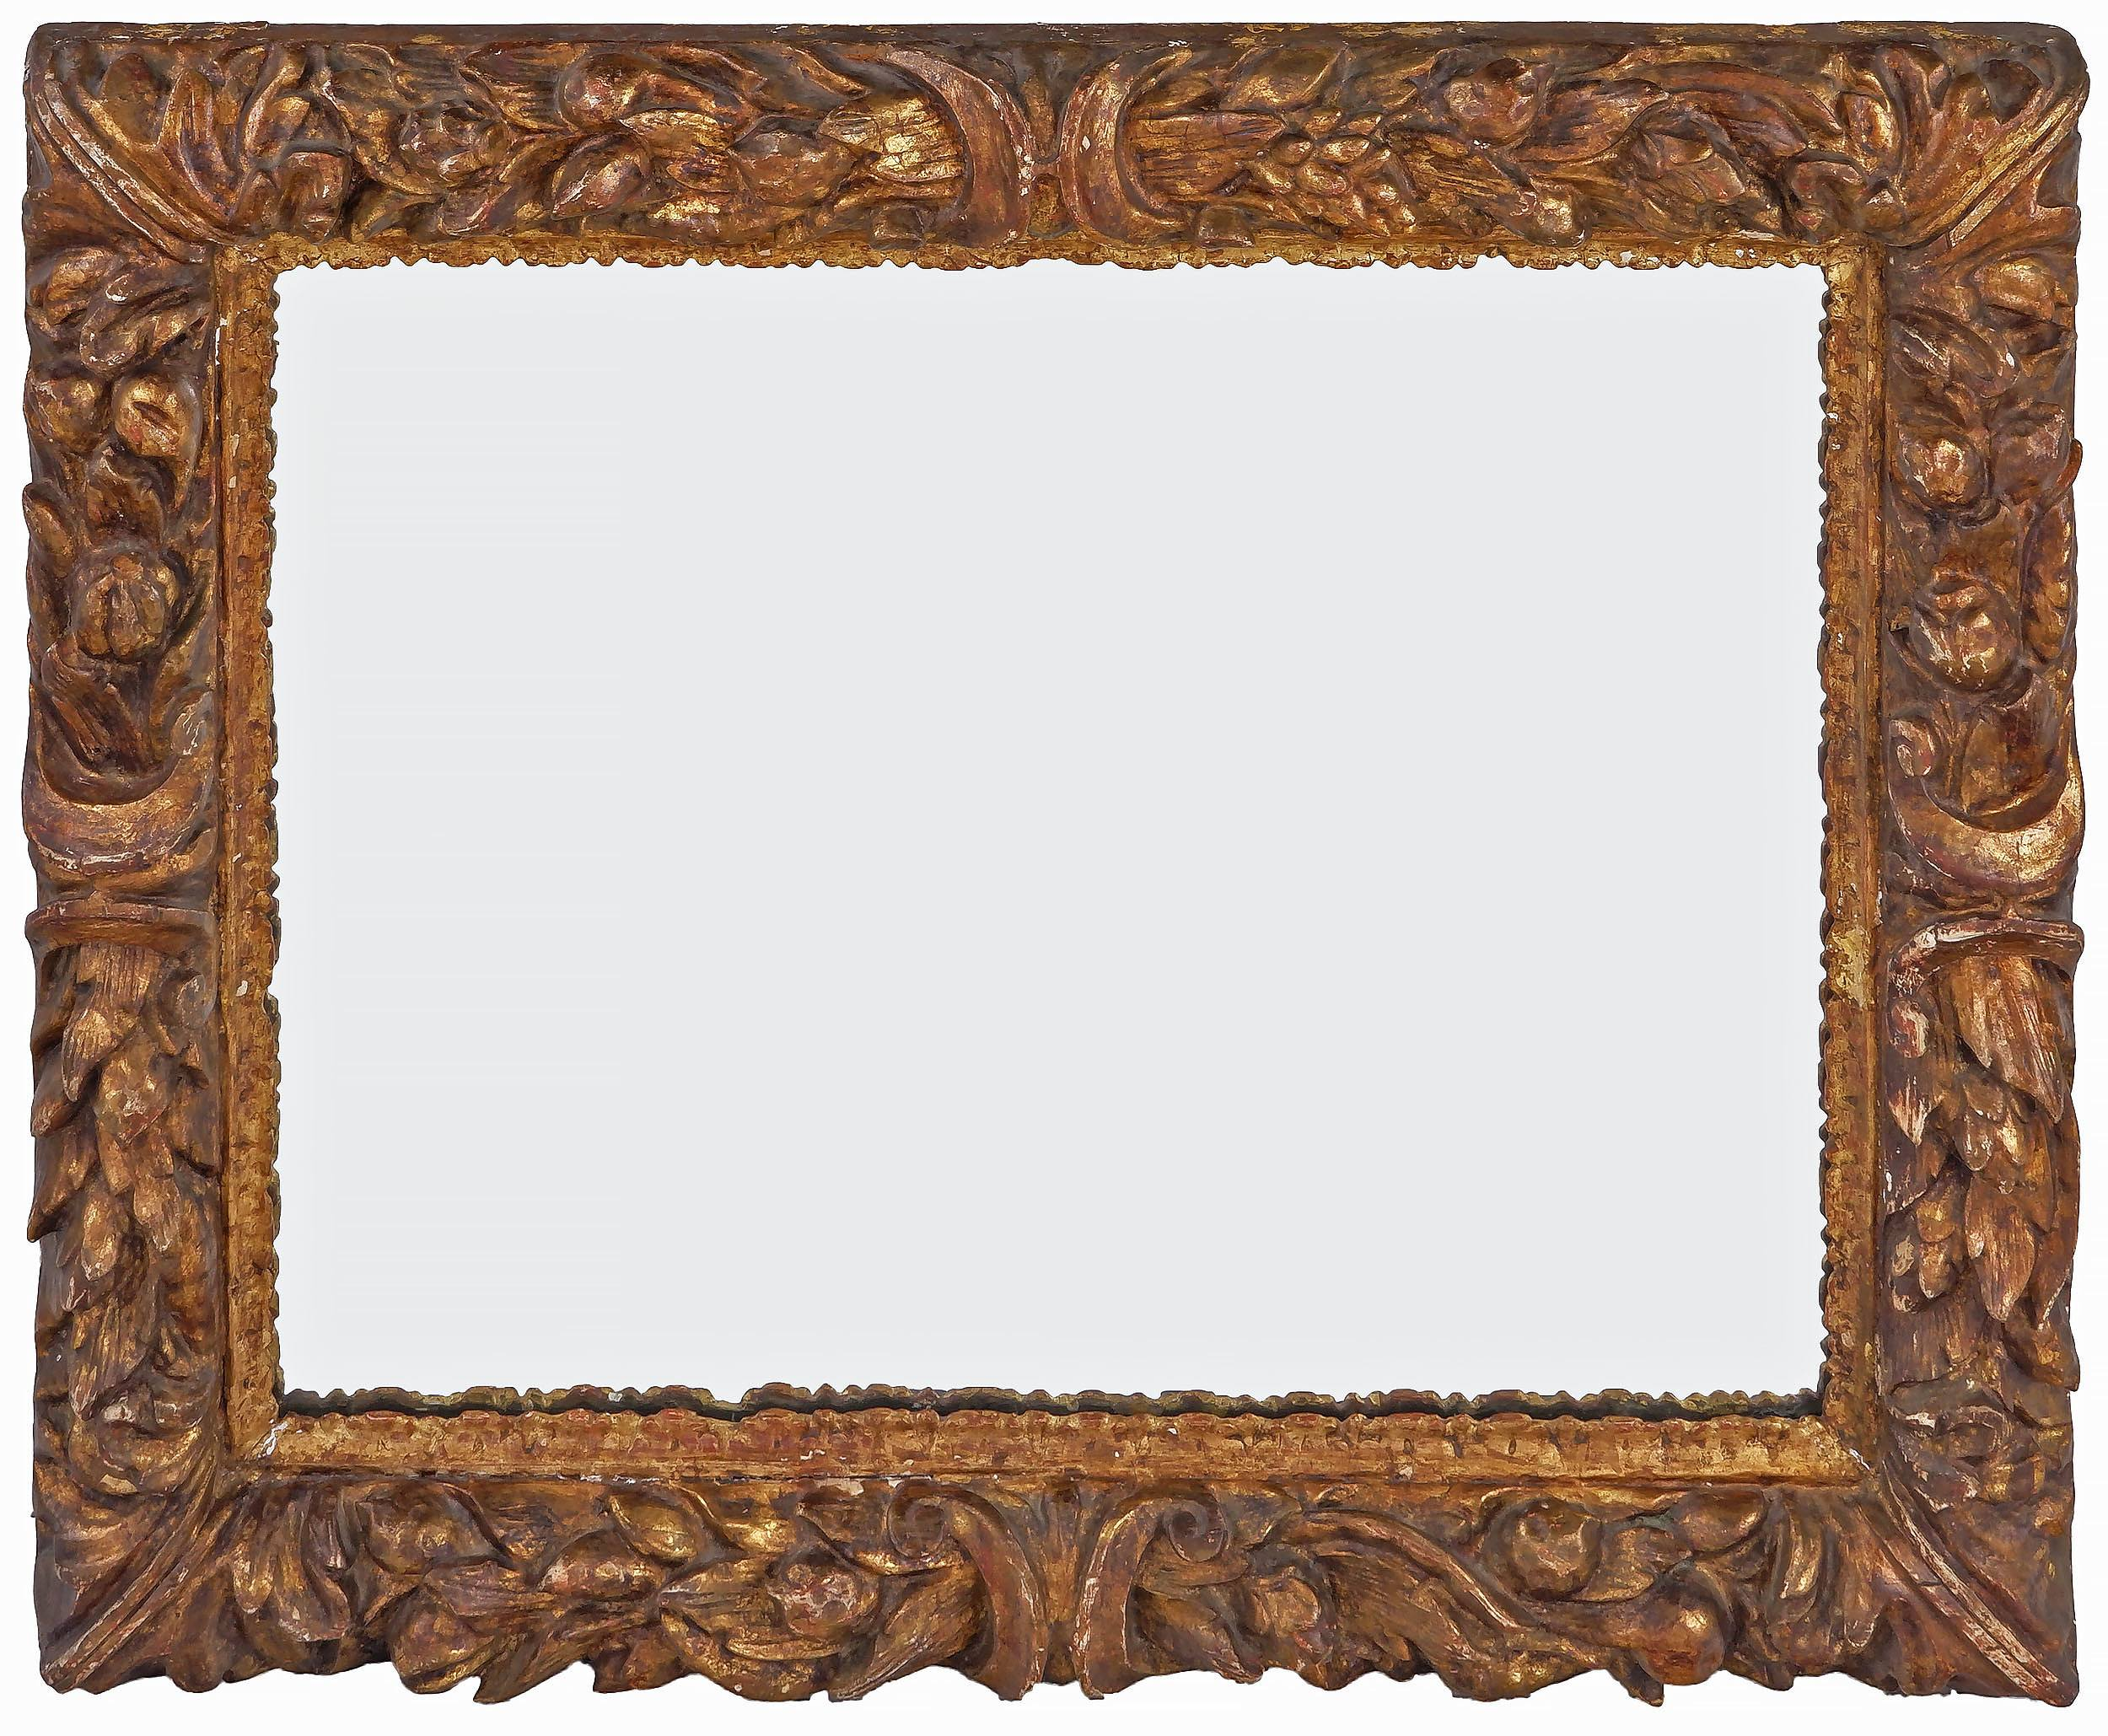 'Antique Italian Carved Giltwood and Moulded Gesso Mirror '